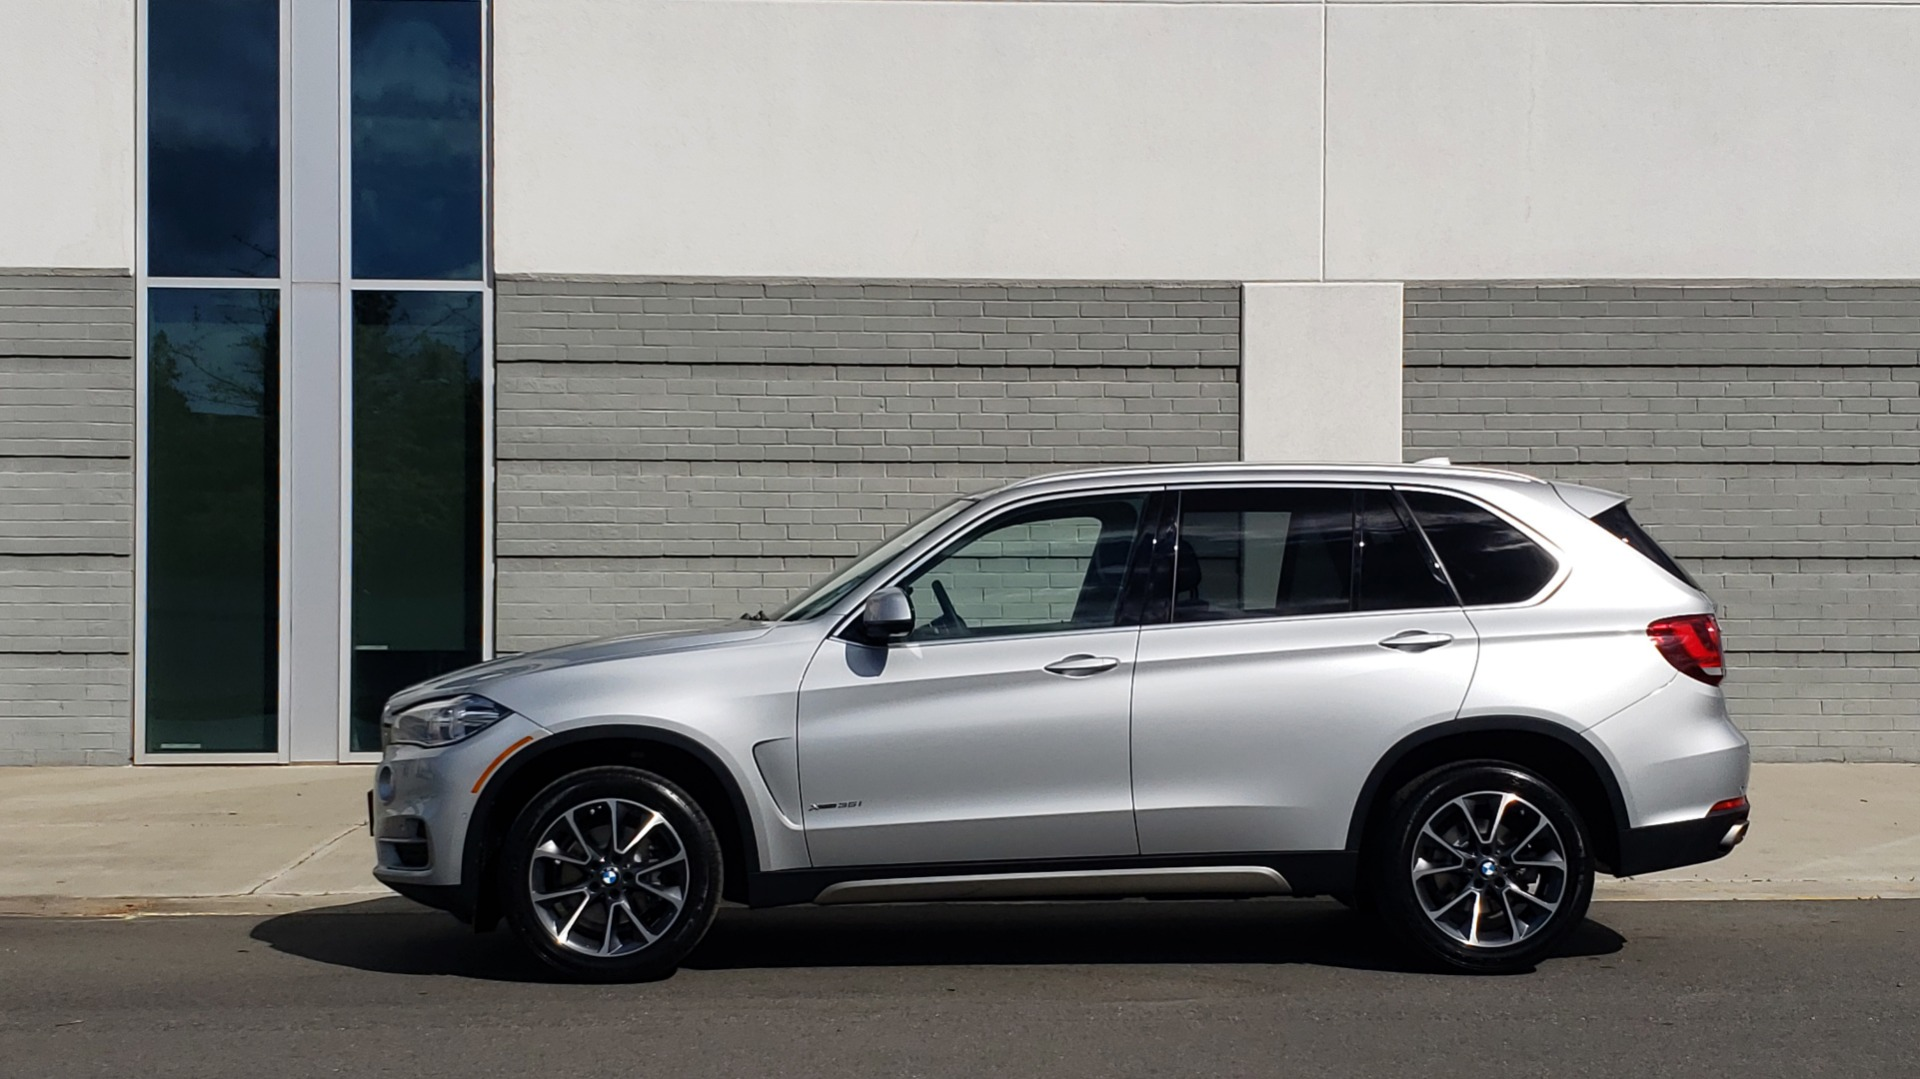 Used 2018 BMW X5 XDRIVE35I PREMIUM / NAV / PANO-ROOF / DRIVER ASST / REARVIEW for sale Sold at Formula Imports in Charlotte NC 28227 5